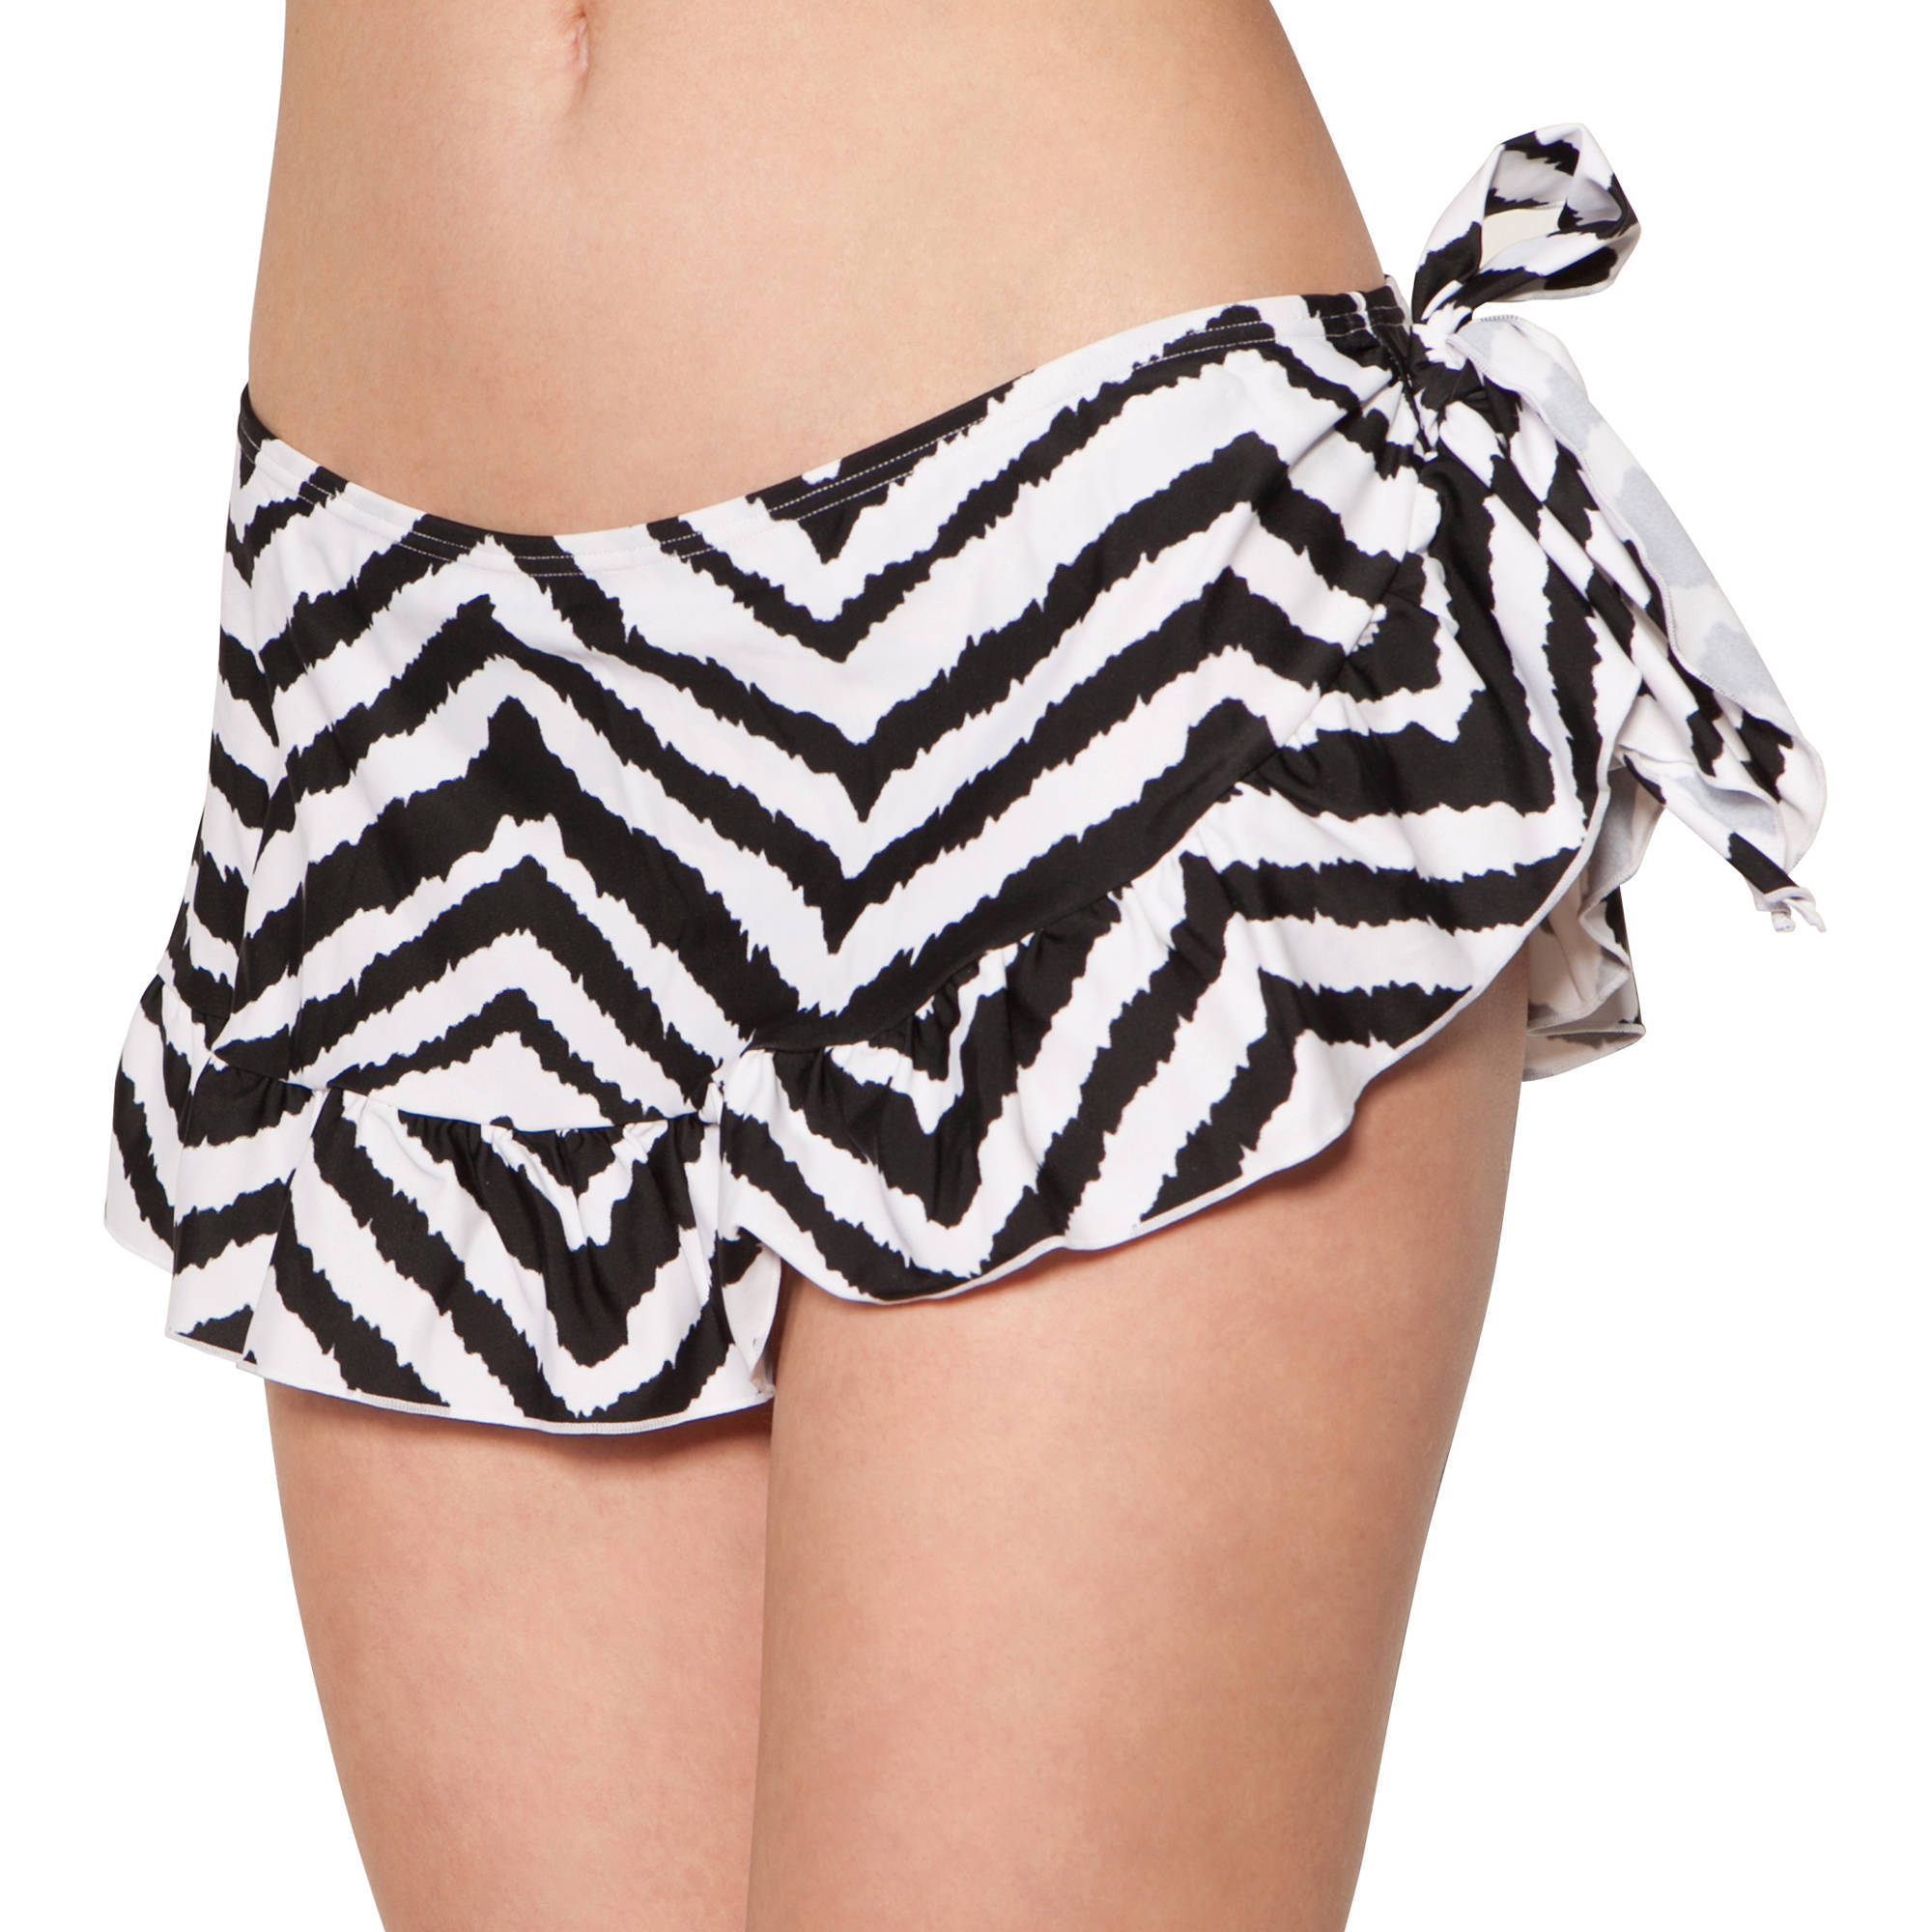 Smart & Sexy Women's Plus-Size Ruffle Skirted Swimsuit Bottom